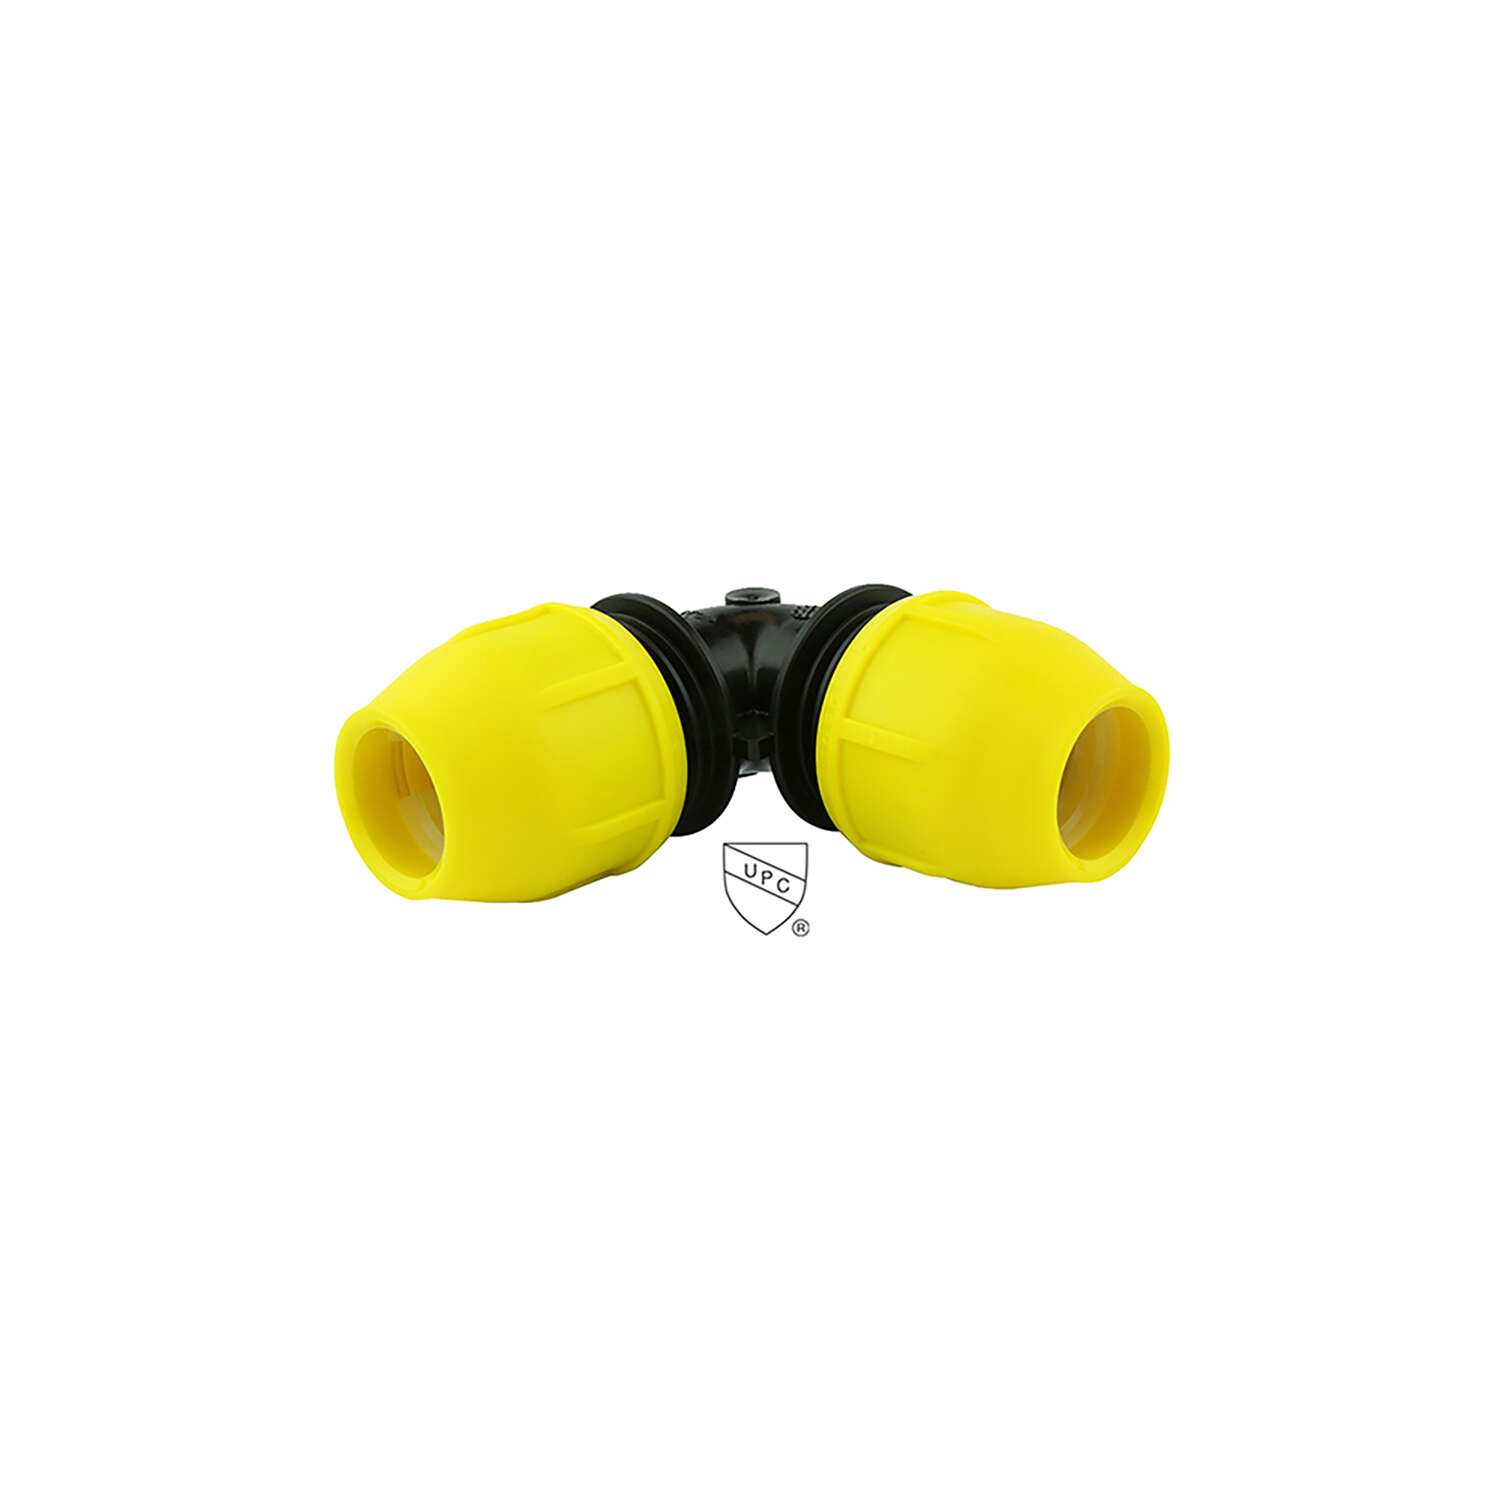 Home-Flex  Underground  1/2 in. IPS   x 1/2 in. Dia. IPS  Poly  Elbow